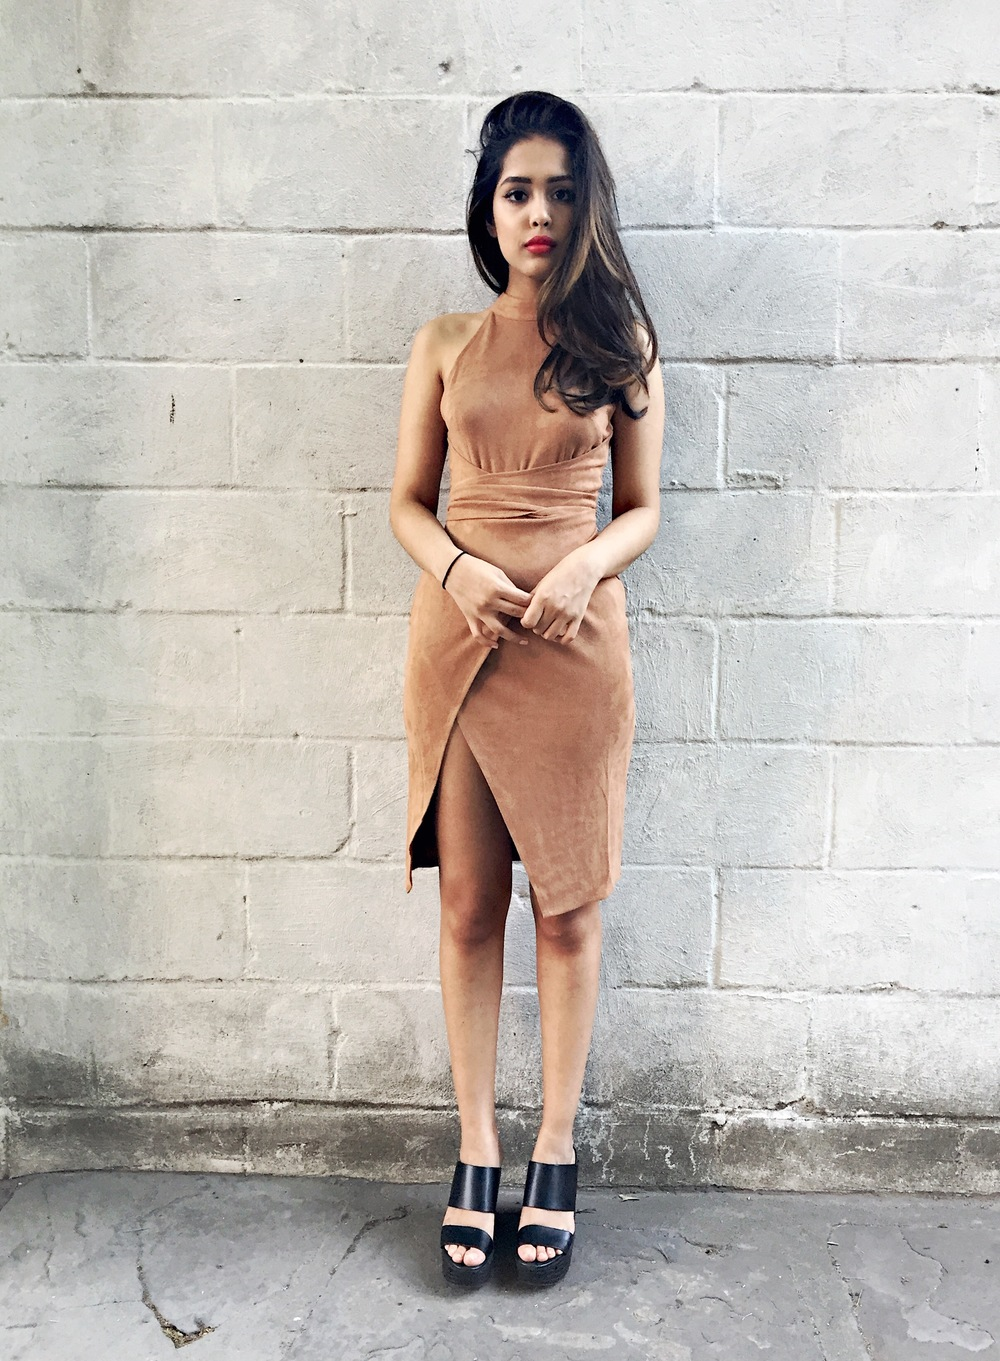 esther boutique, arushi khosla, arushi.co, tan suede dress, downtown brooklyn, indian blogger, zara shoes, zara platforms, bayalage hair